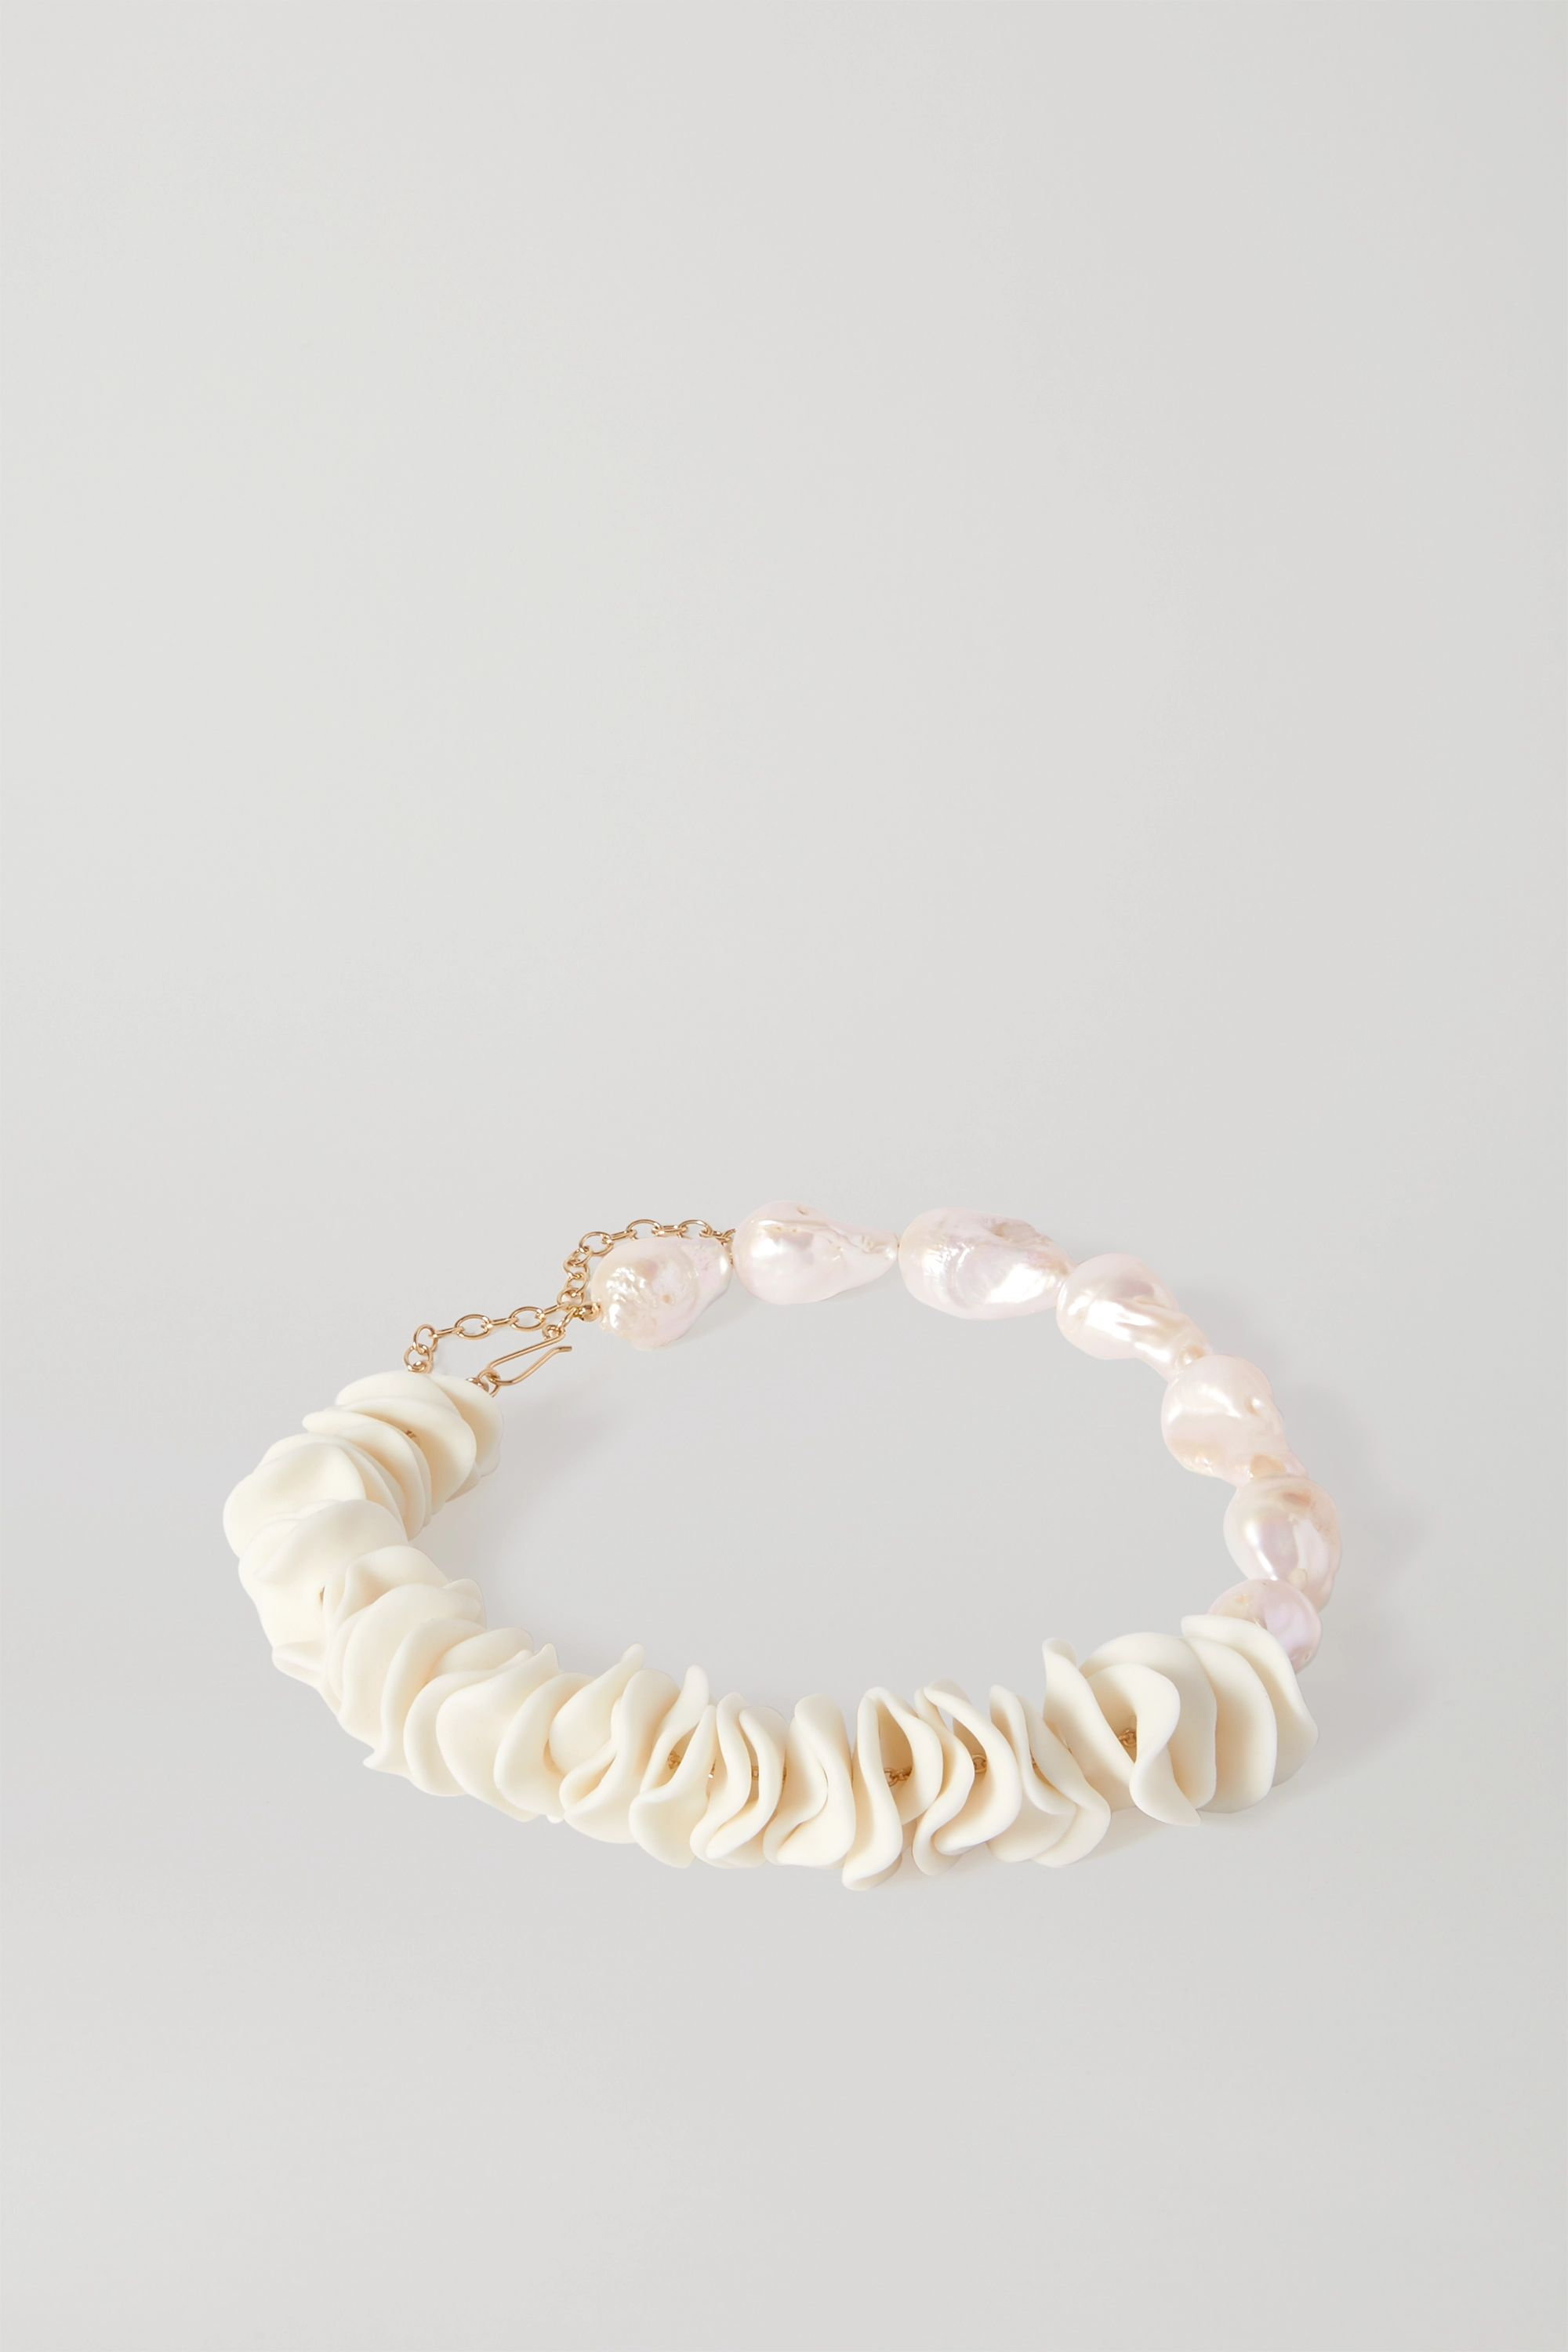 Completedworks 56 Reasons to Start an Allotment gold vermeil, ceramic and pearl necklace